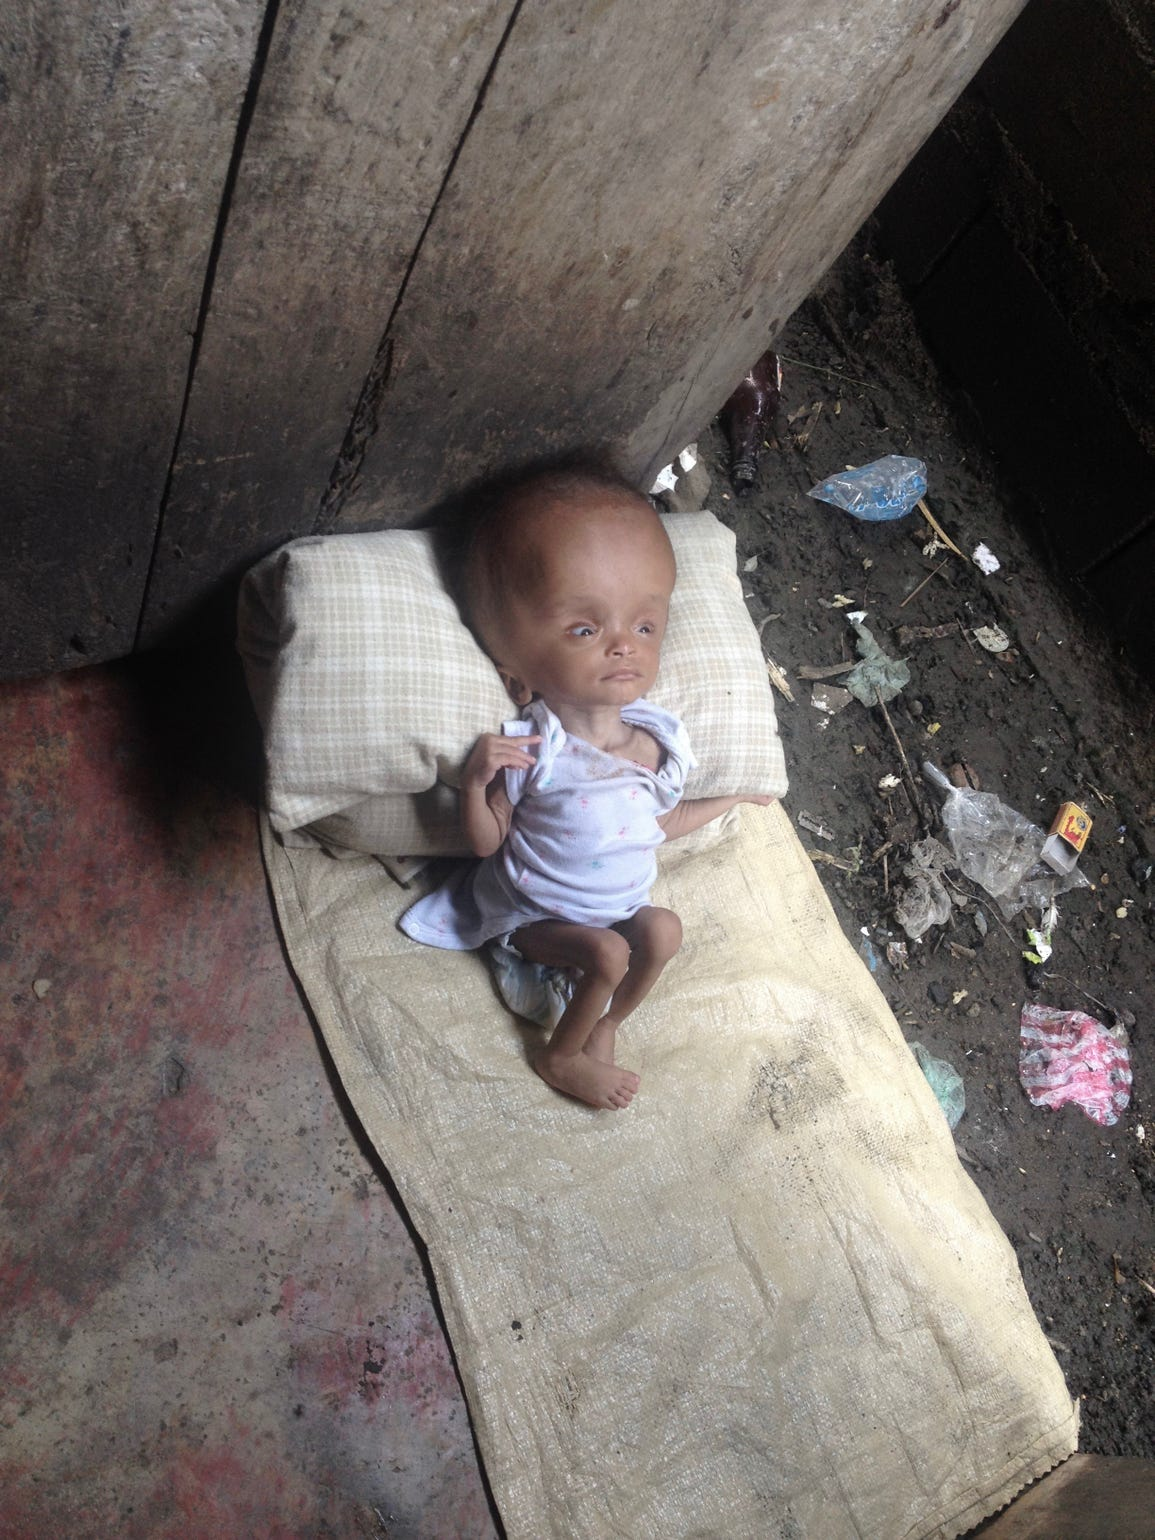 Nika was born to a Haitian prostitute. She suffers